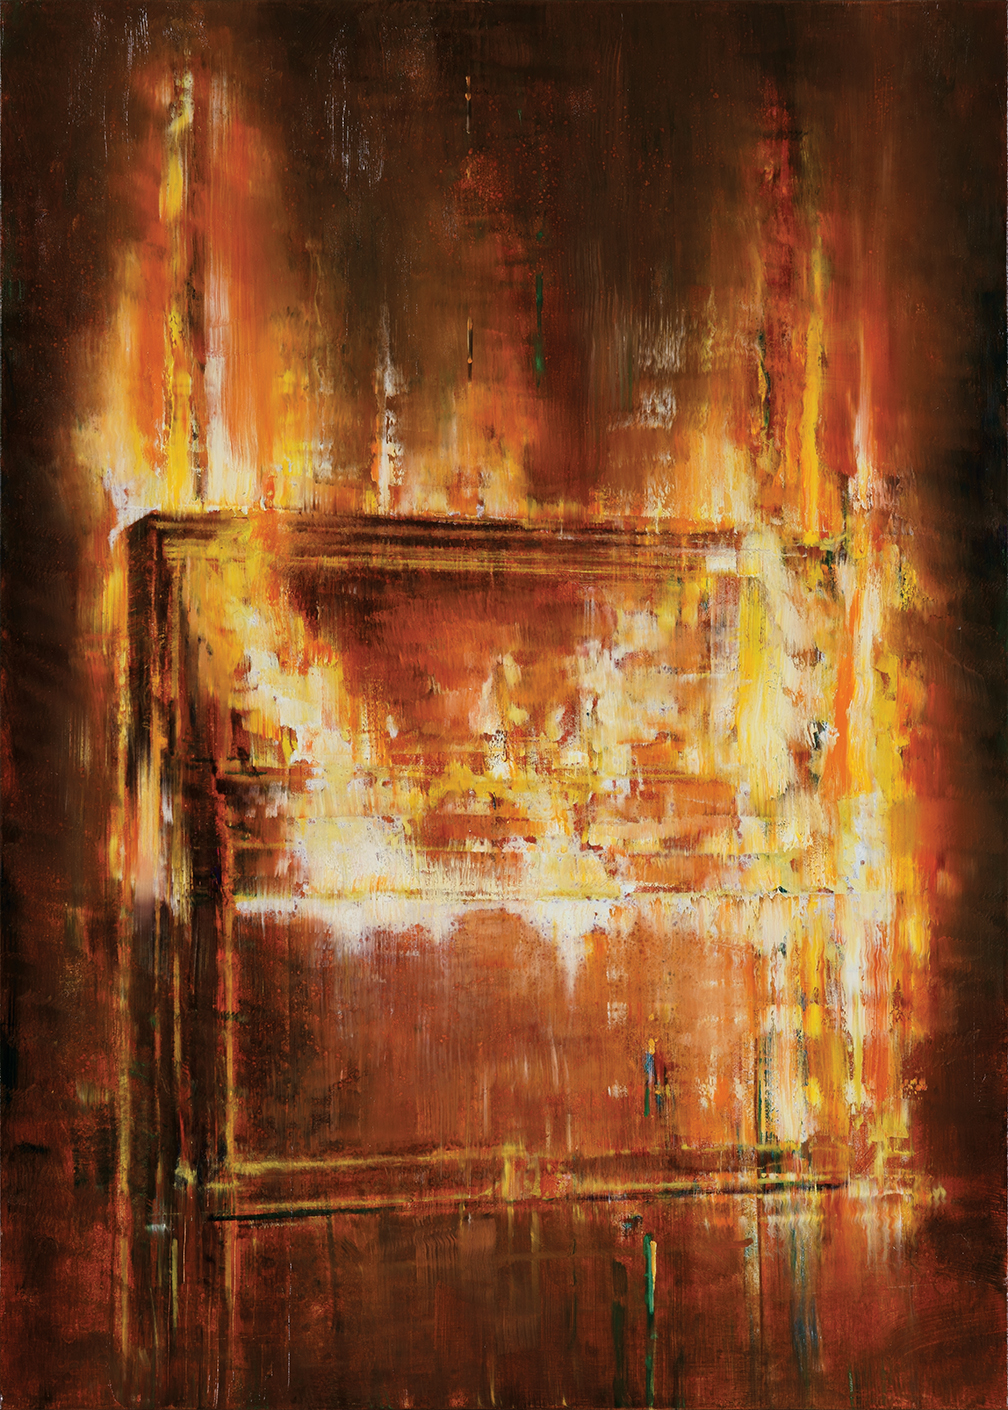 piano on fire, oil on canvas, 140x100cm. 2019